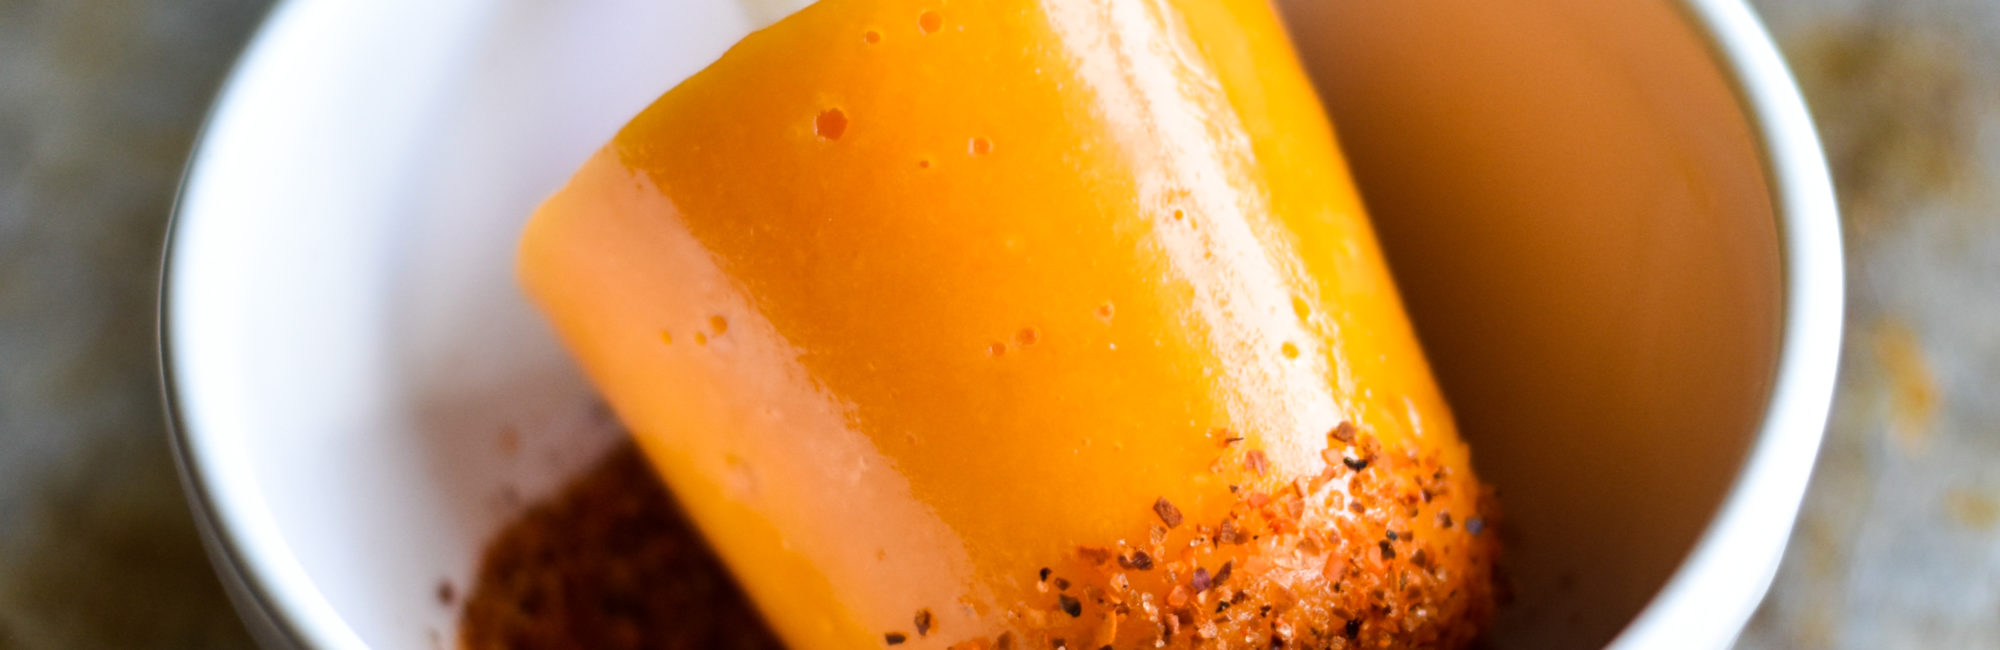 Sour and Spicy Mango Chili Paletas (Popsicles)